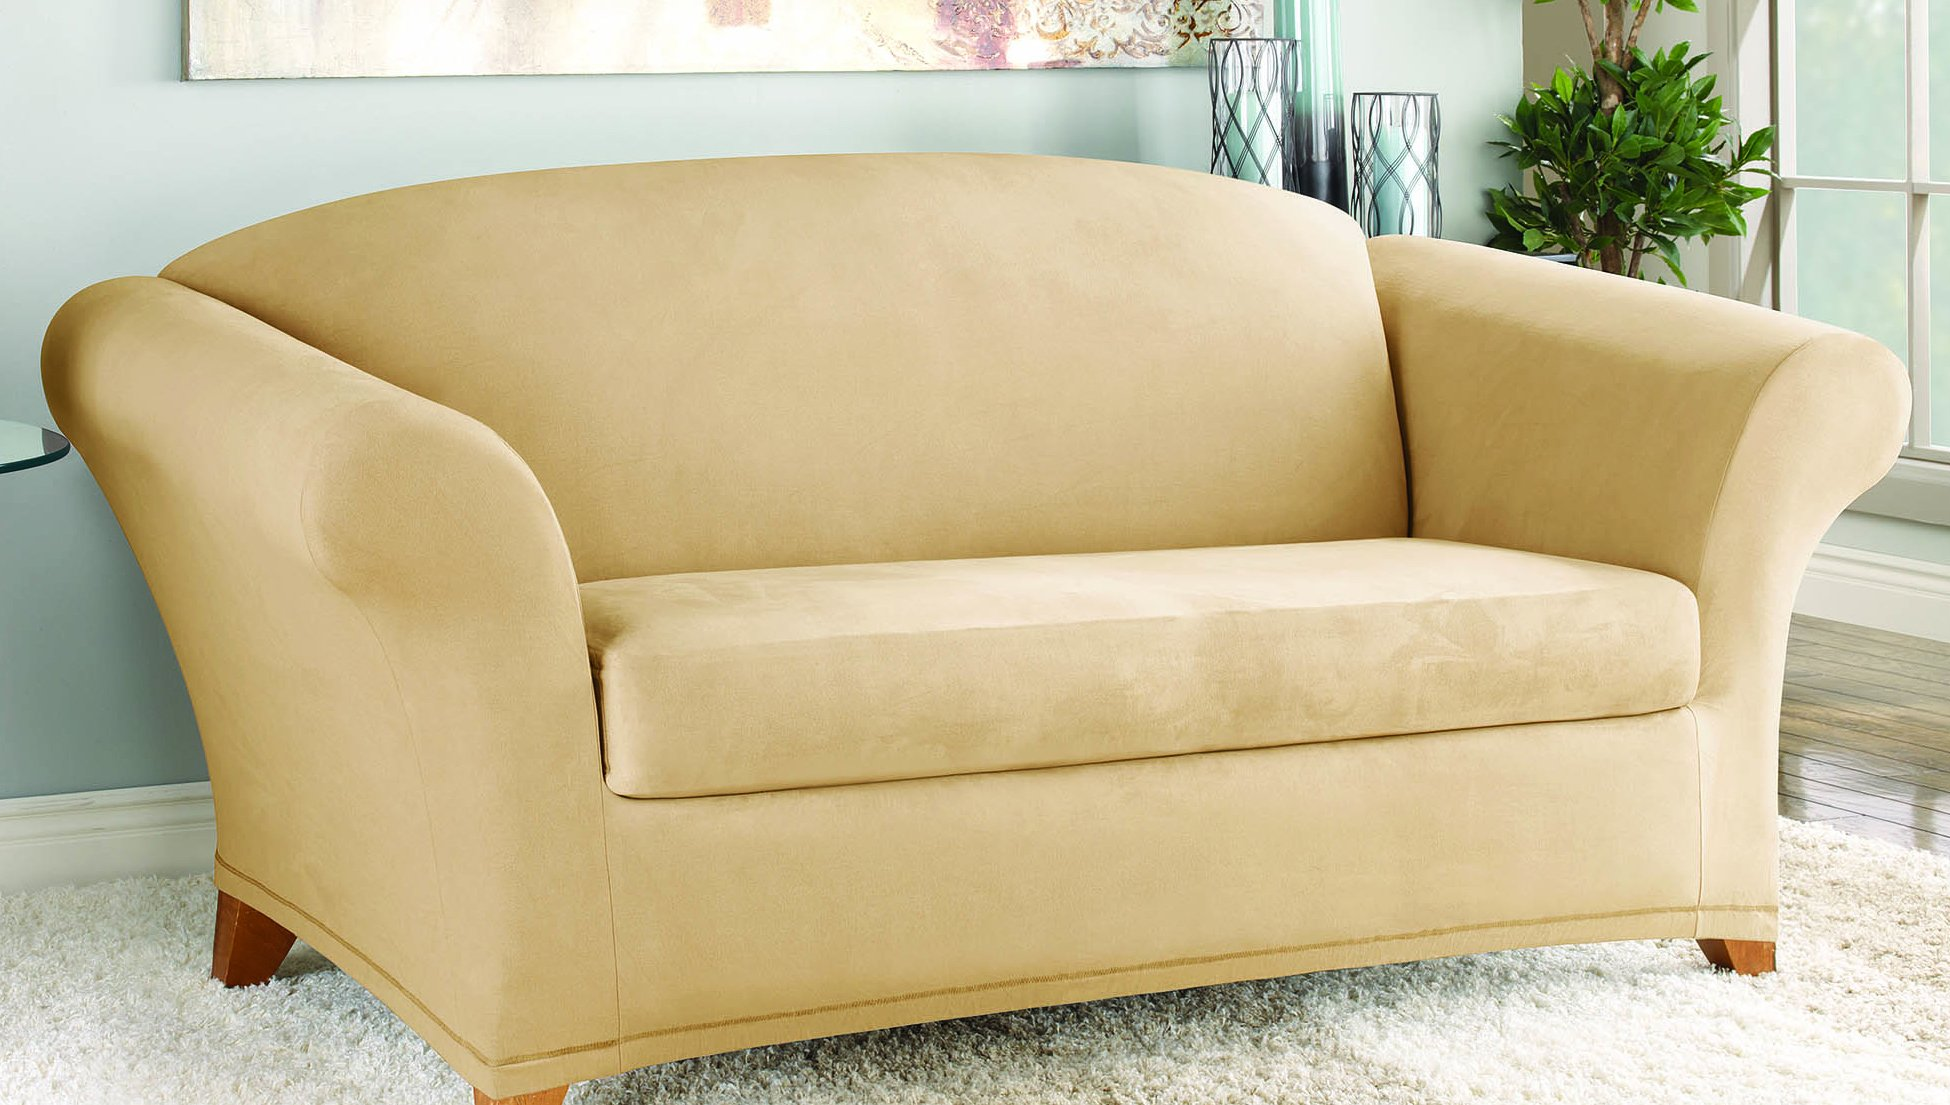 Sure Fit Stretch Suede - Loveseat Slipcover  - Camel (SF36448)